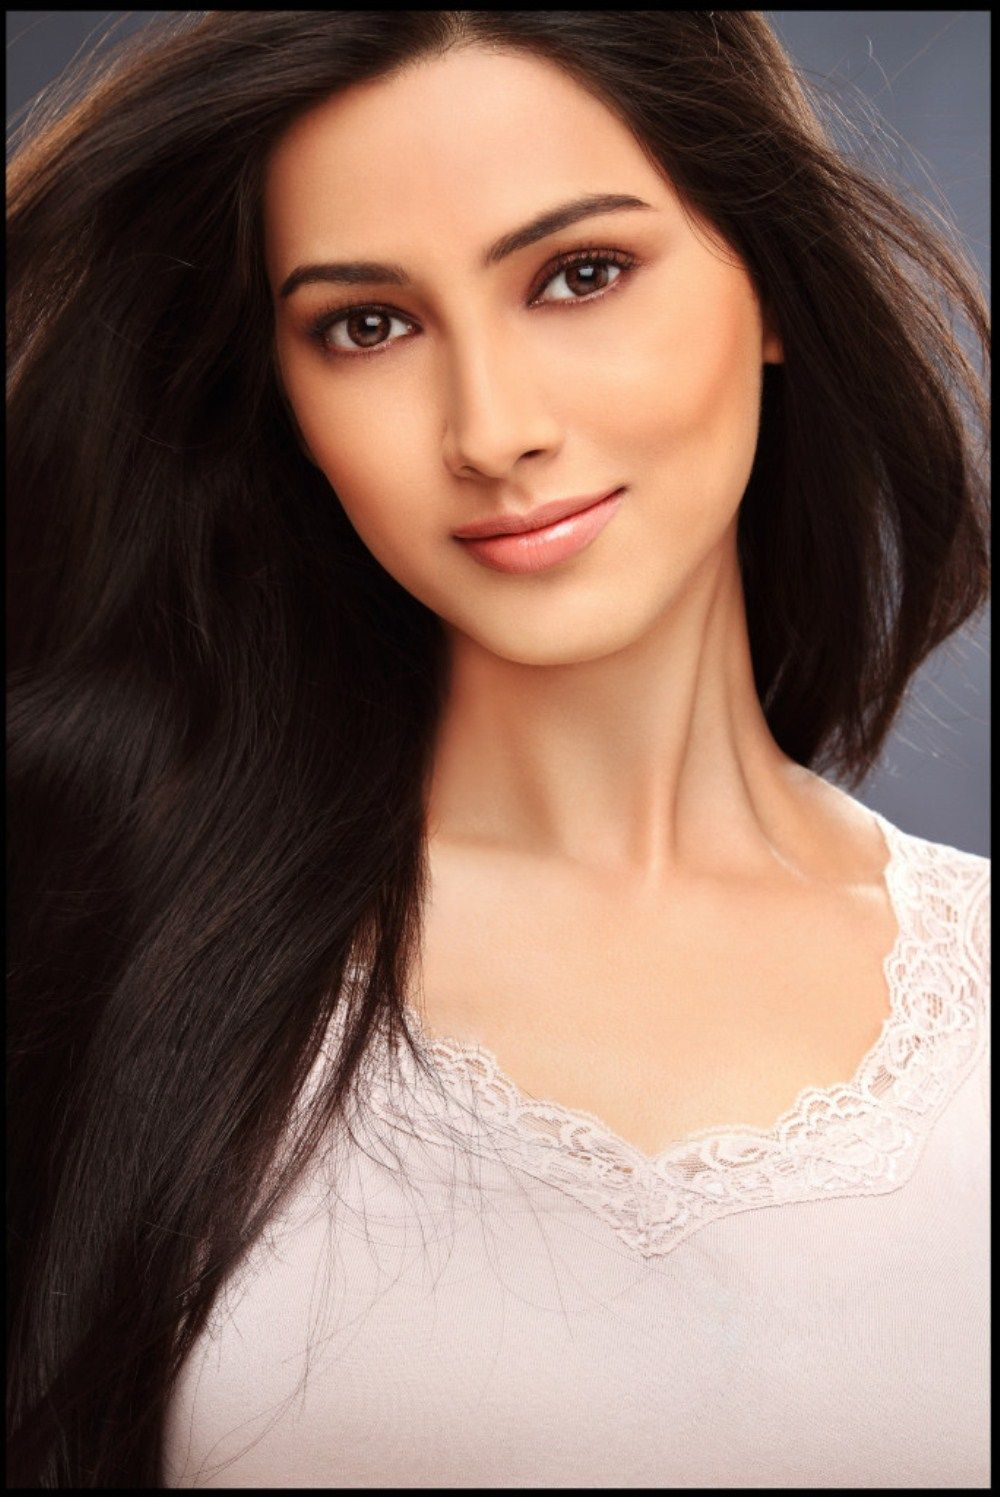 pallavi subhash biography